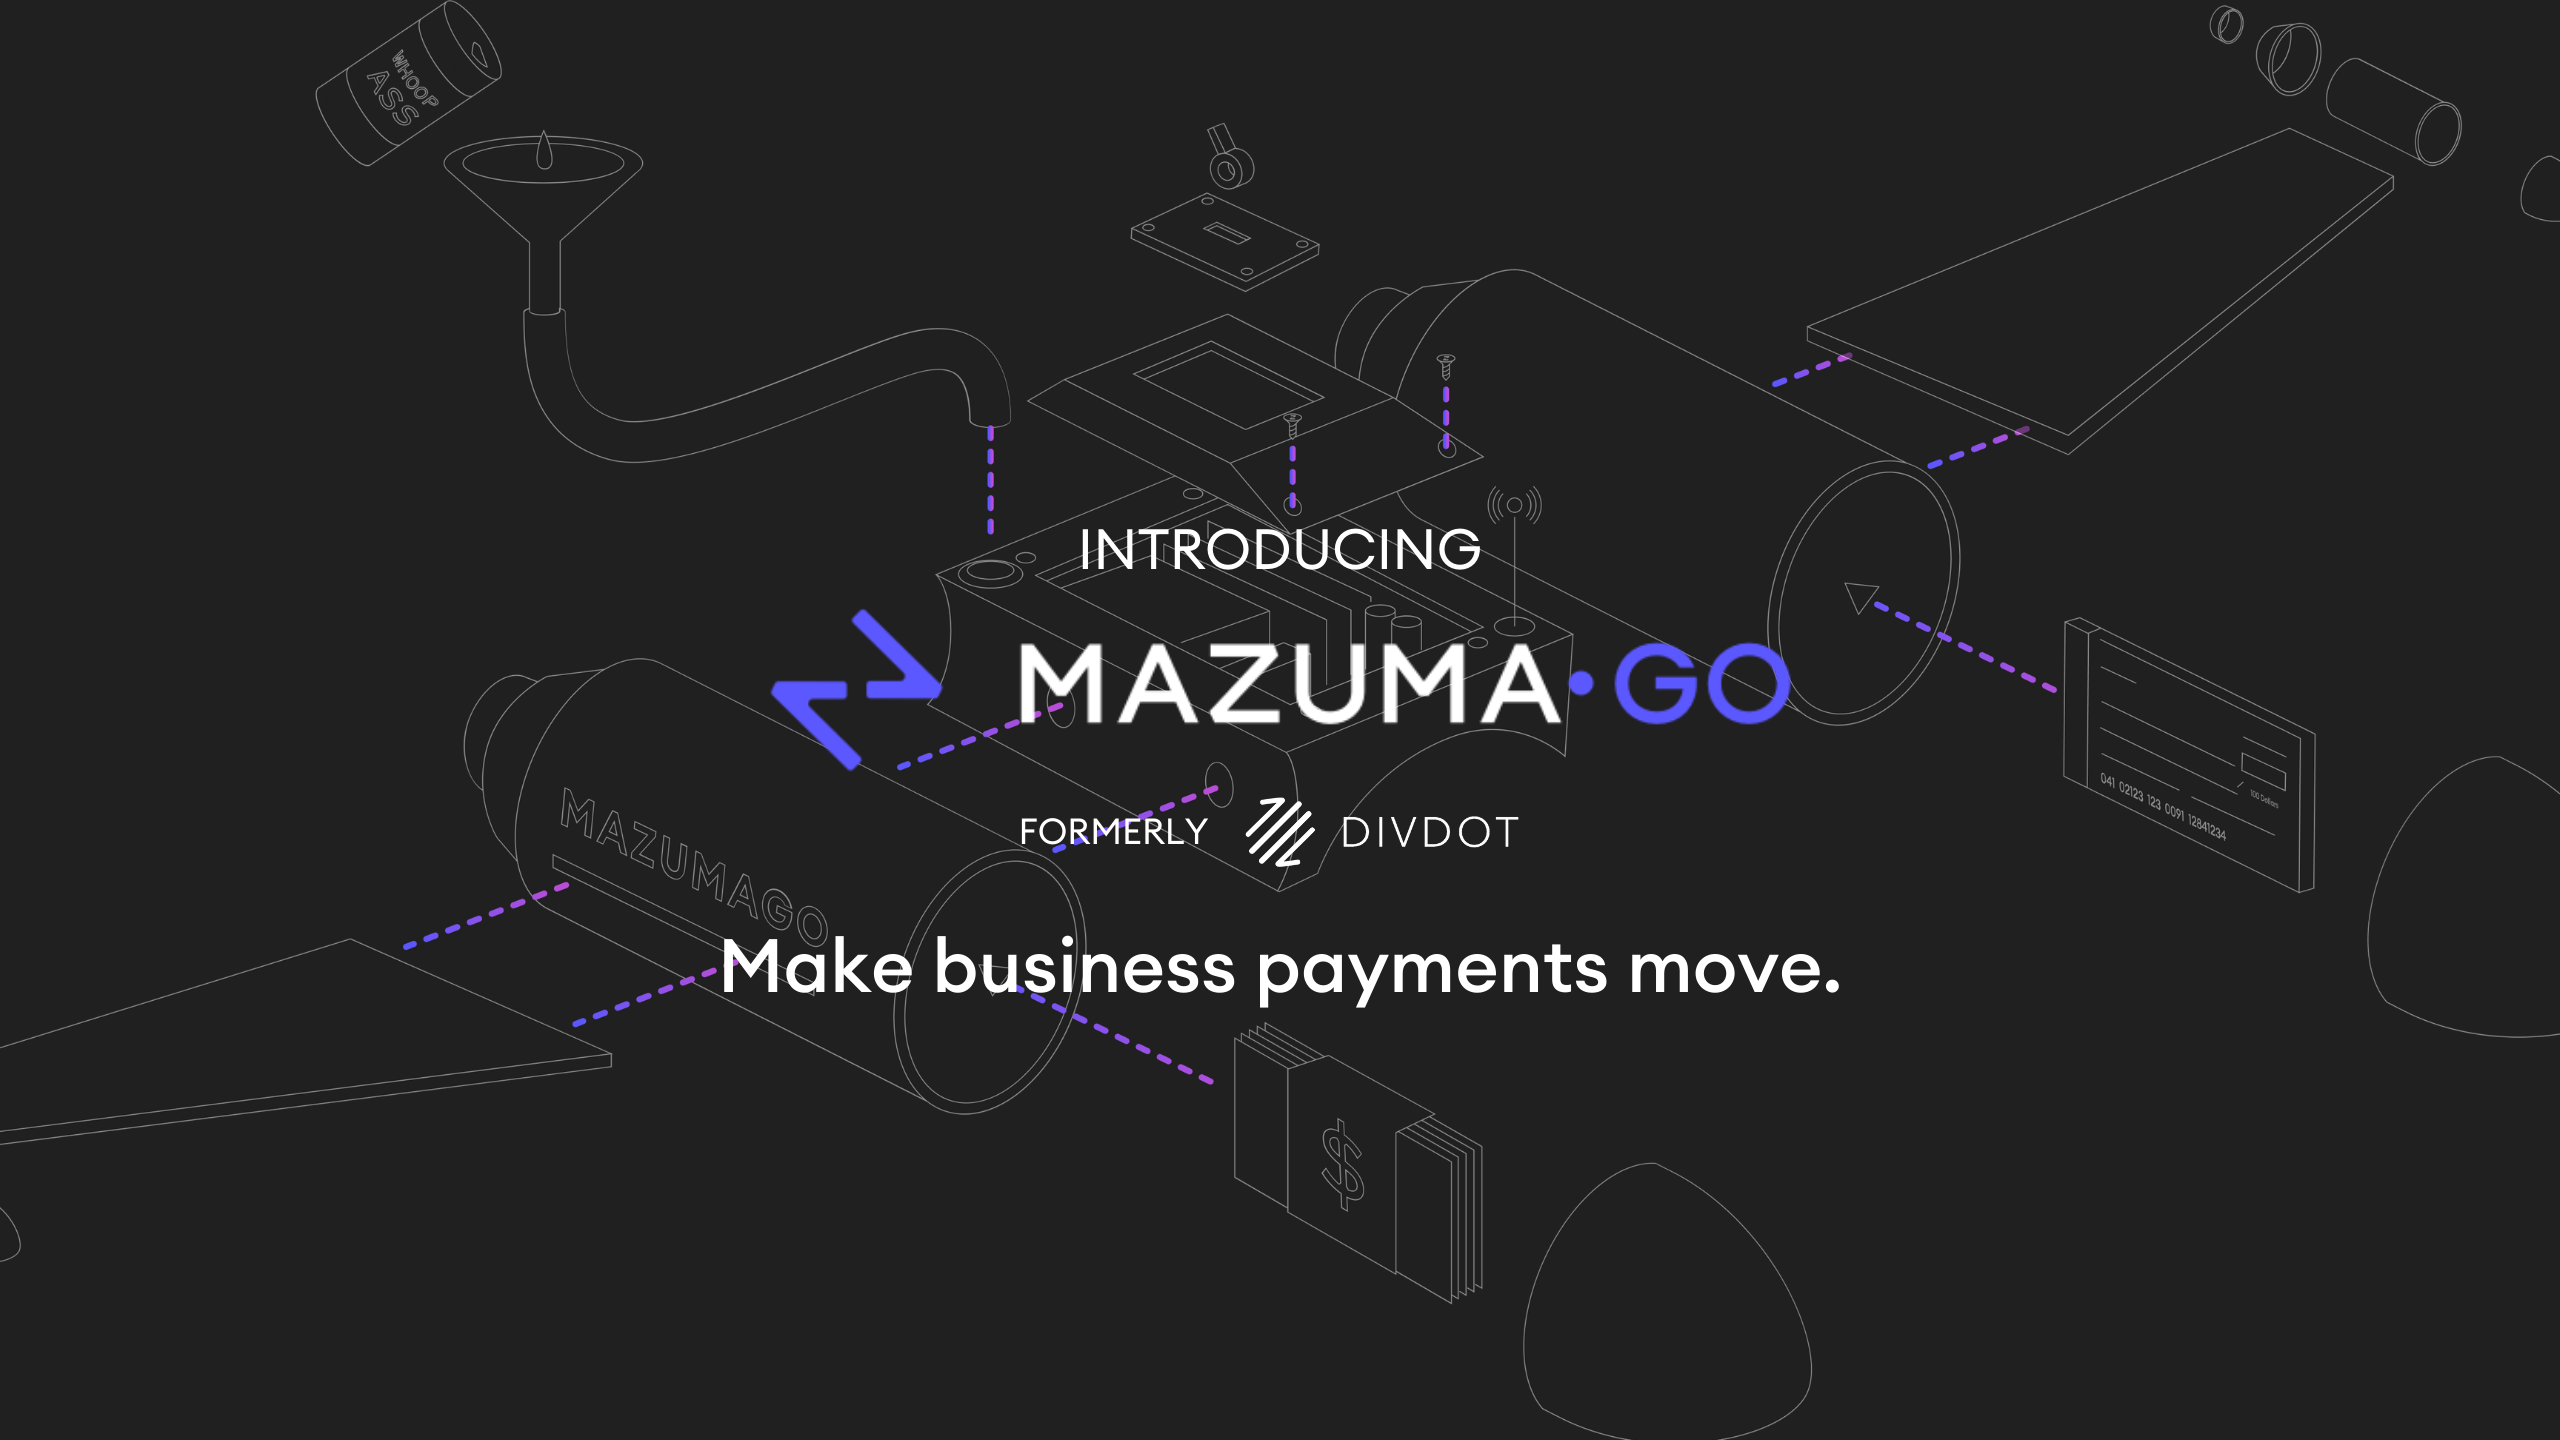 New name, same product: DivDot is now MazumaGo